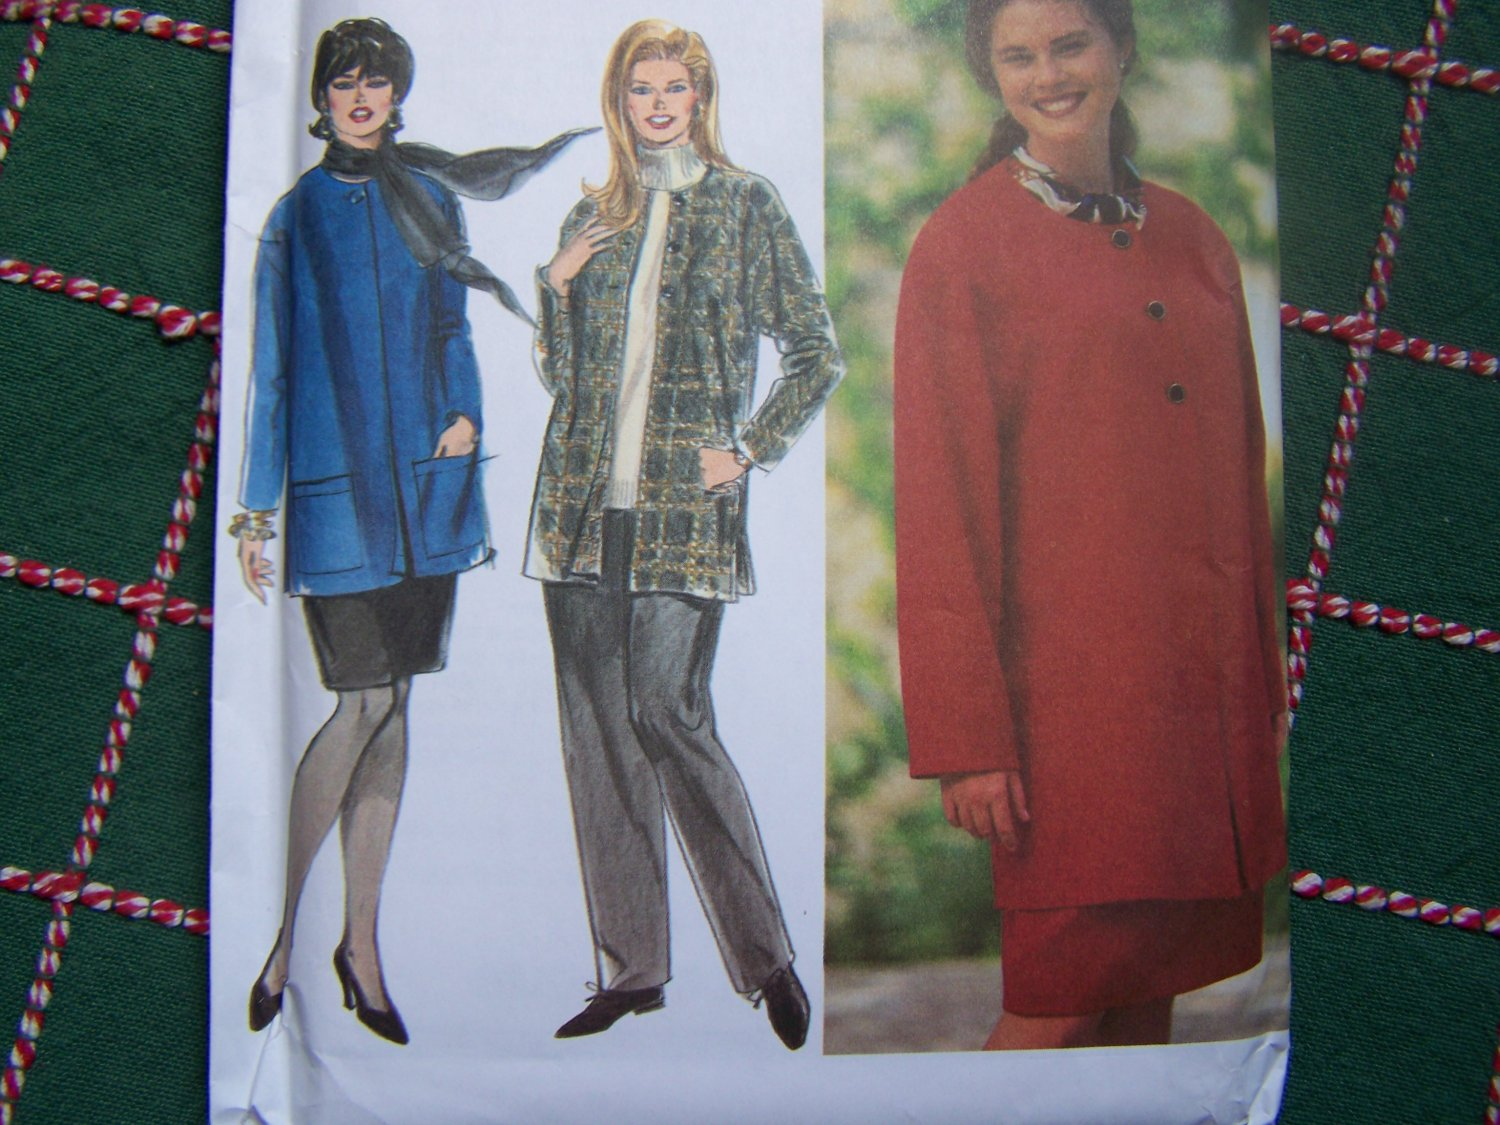 Free USA S&H New Womens Plus Size Sewing Pattern 9787 Jacket Pull on Pants or Skirt 18 20 22 24W